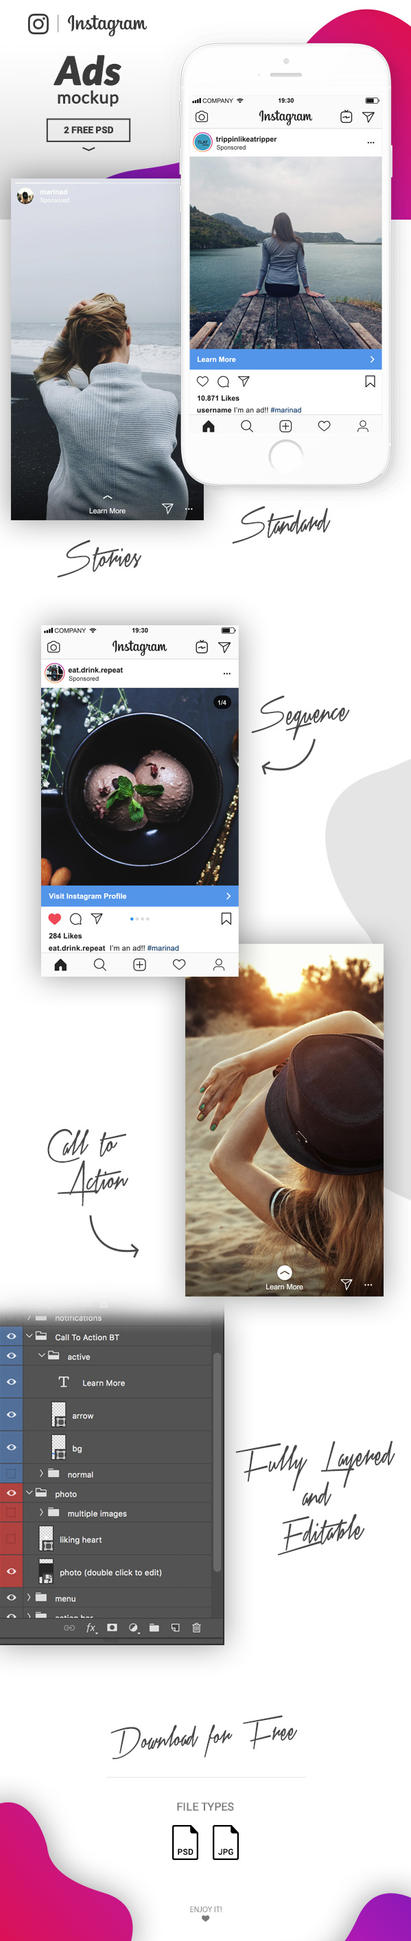 FREE Instagram Ads Mockup 2018 by MarinaD